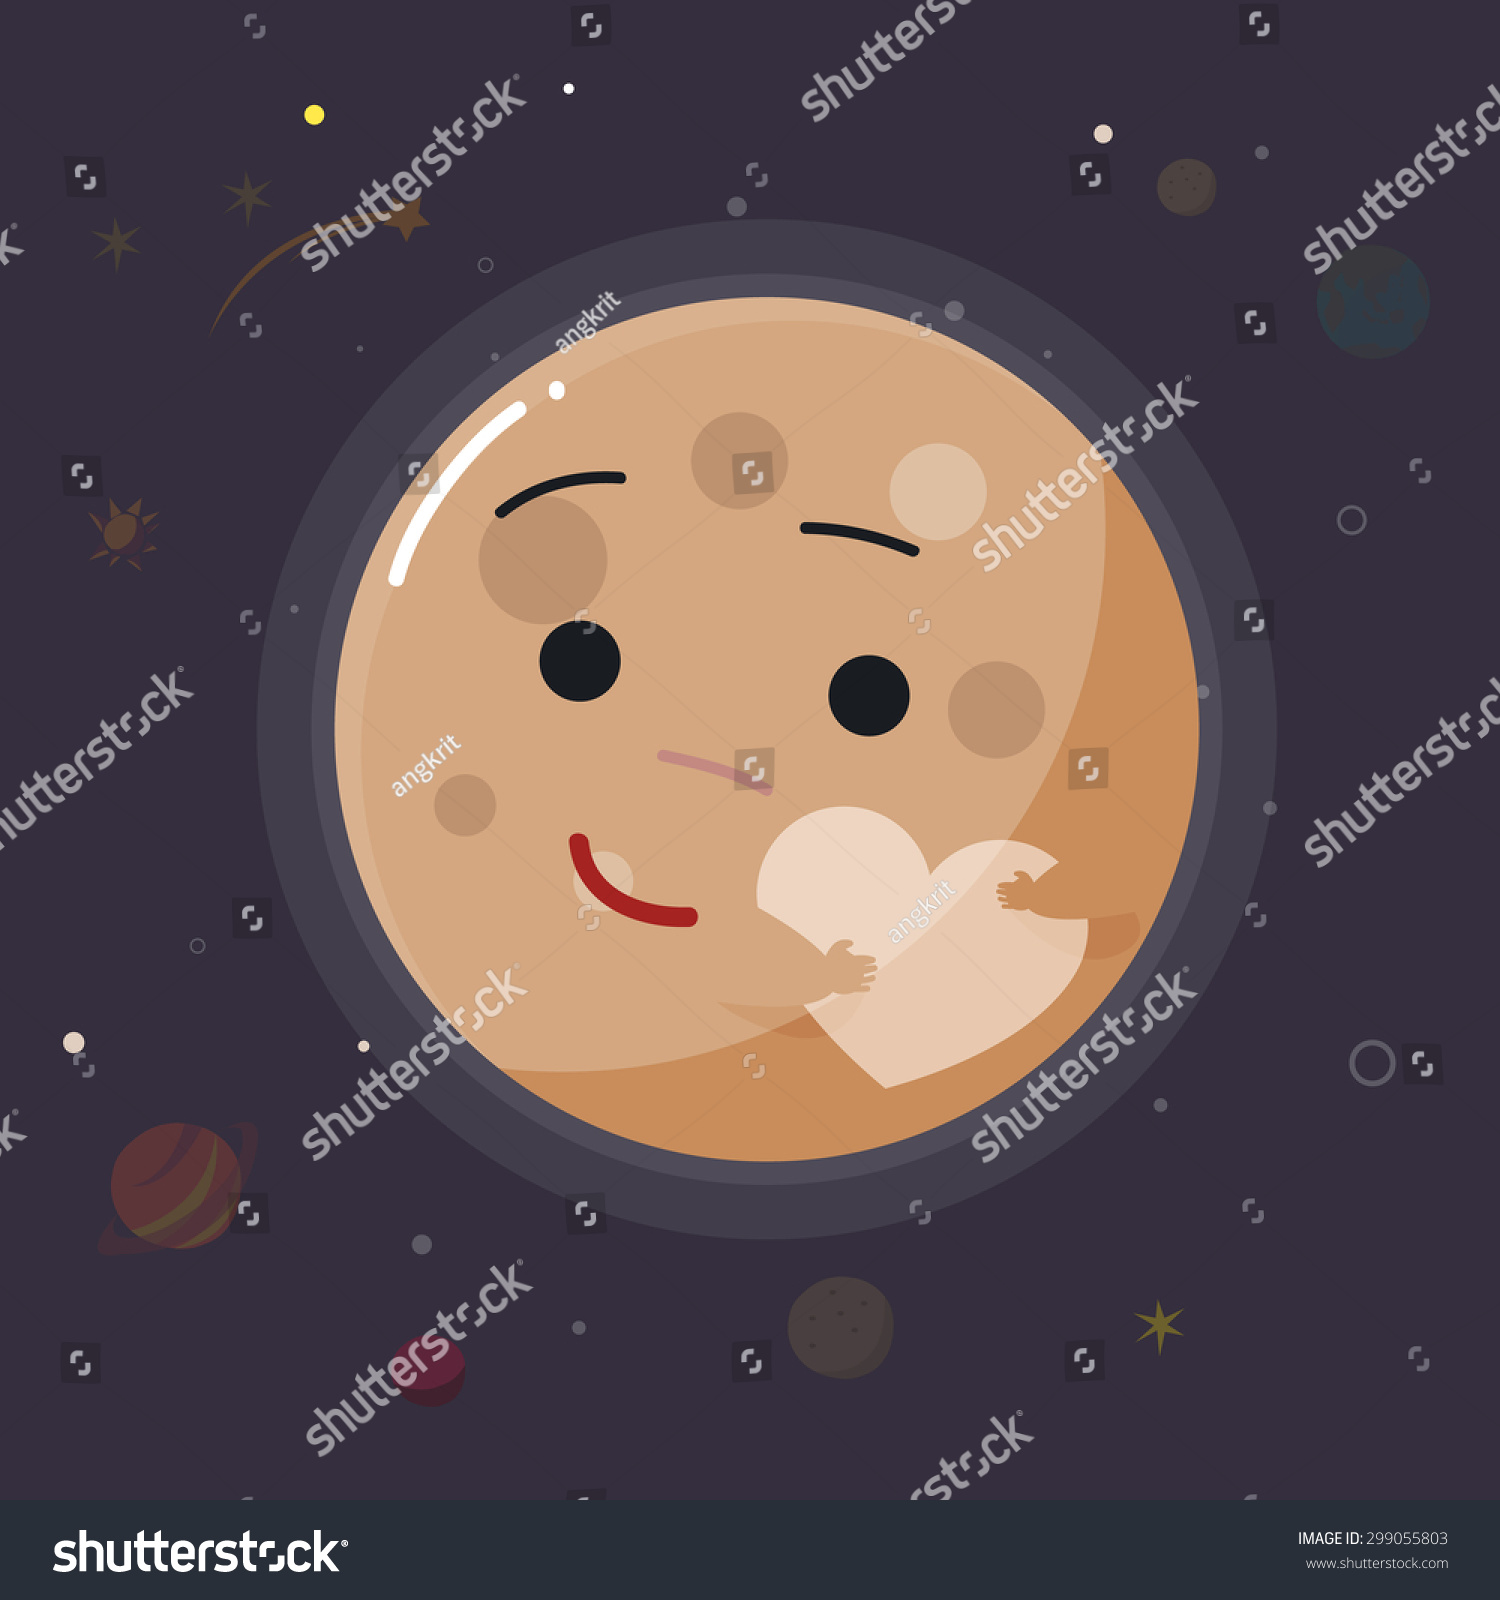 Cute Pluto Planet Vector Illustration Stock Vector 299055803 ...